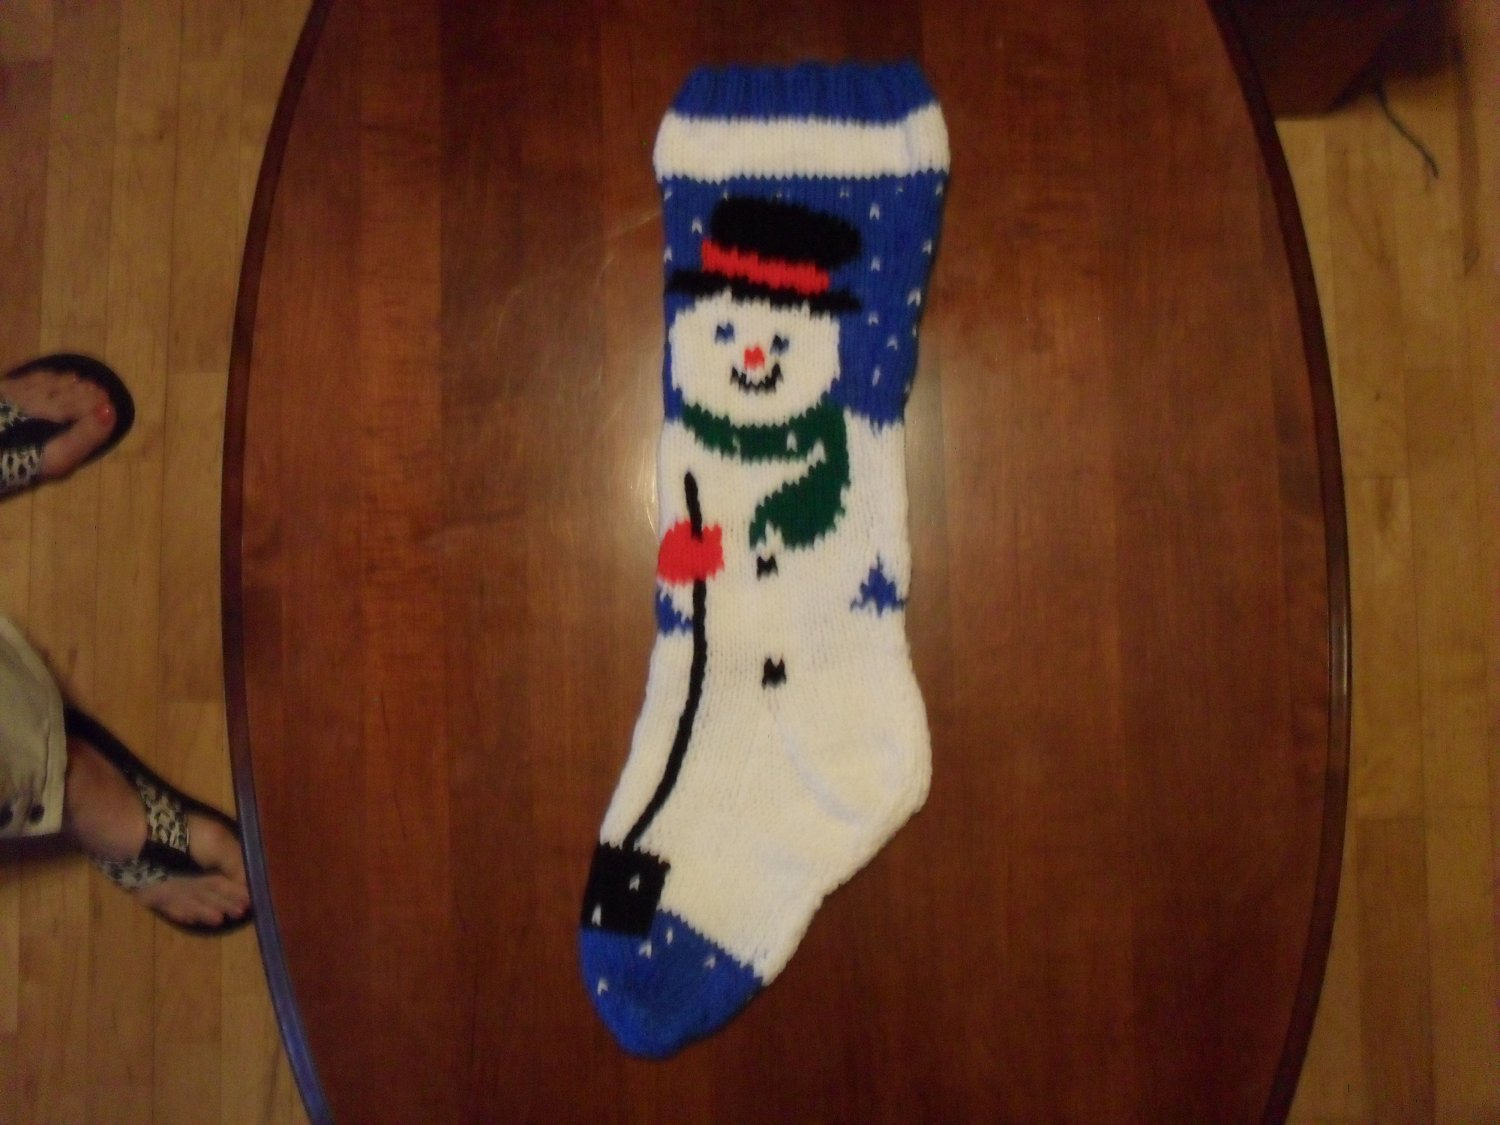 Handcrafted/Hand Made Heritage Knit Christmas Stocking - Snowman on Blue (Item #51)